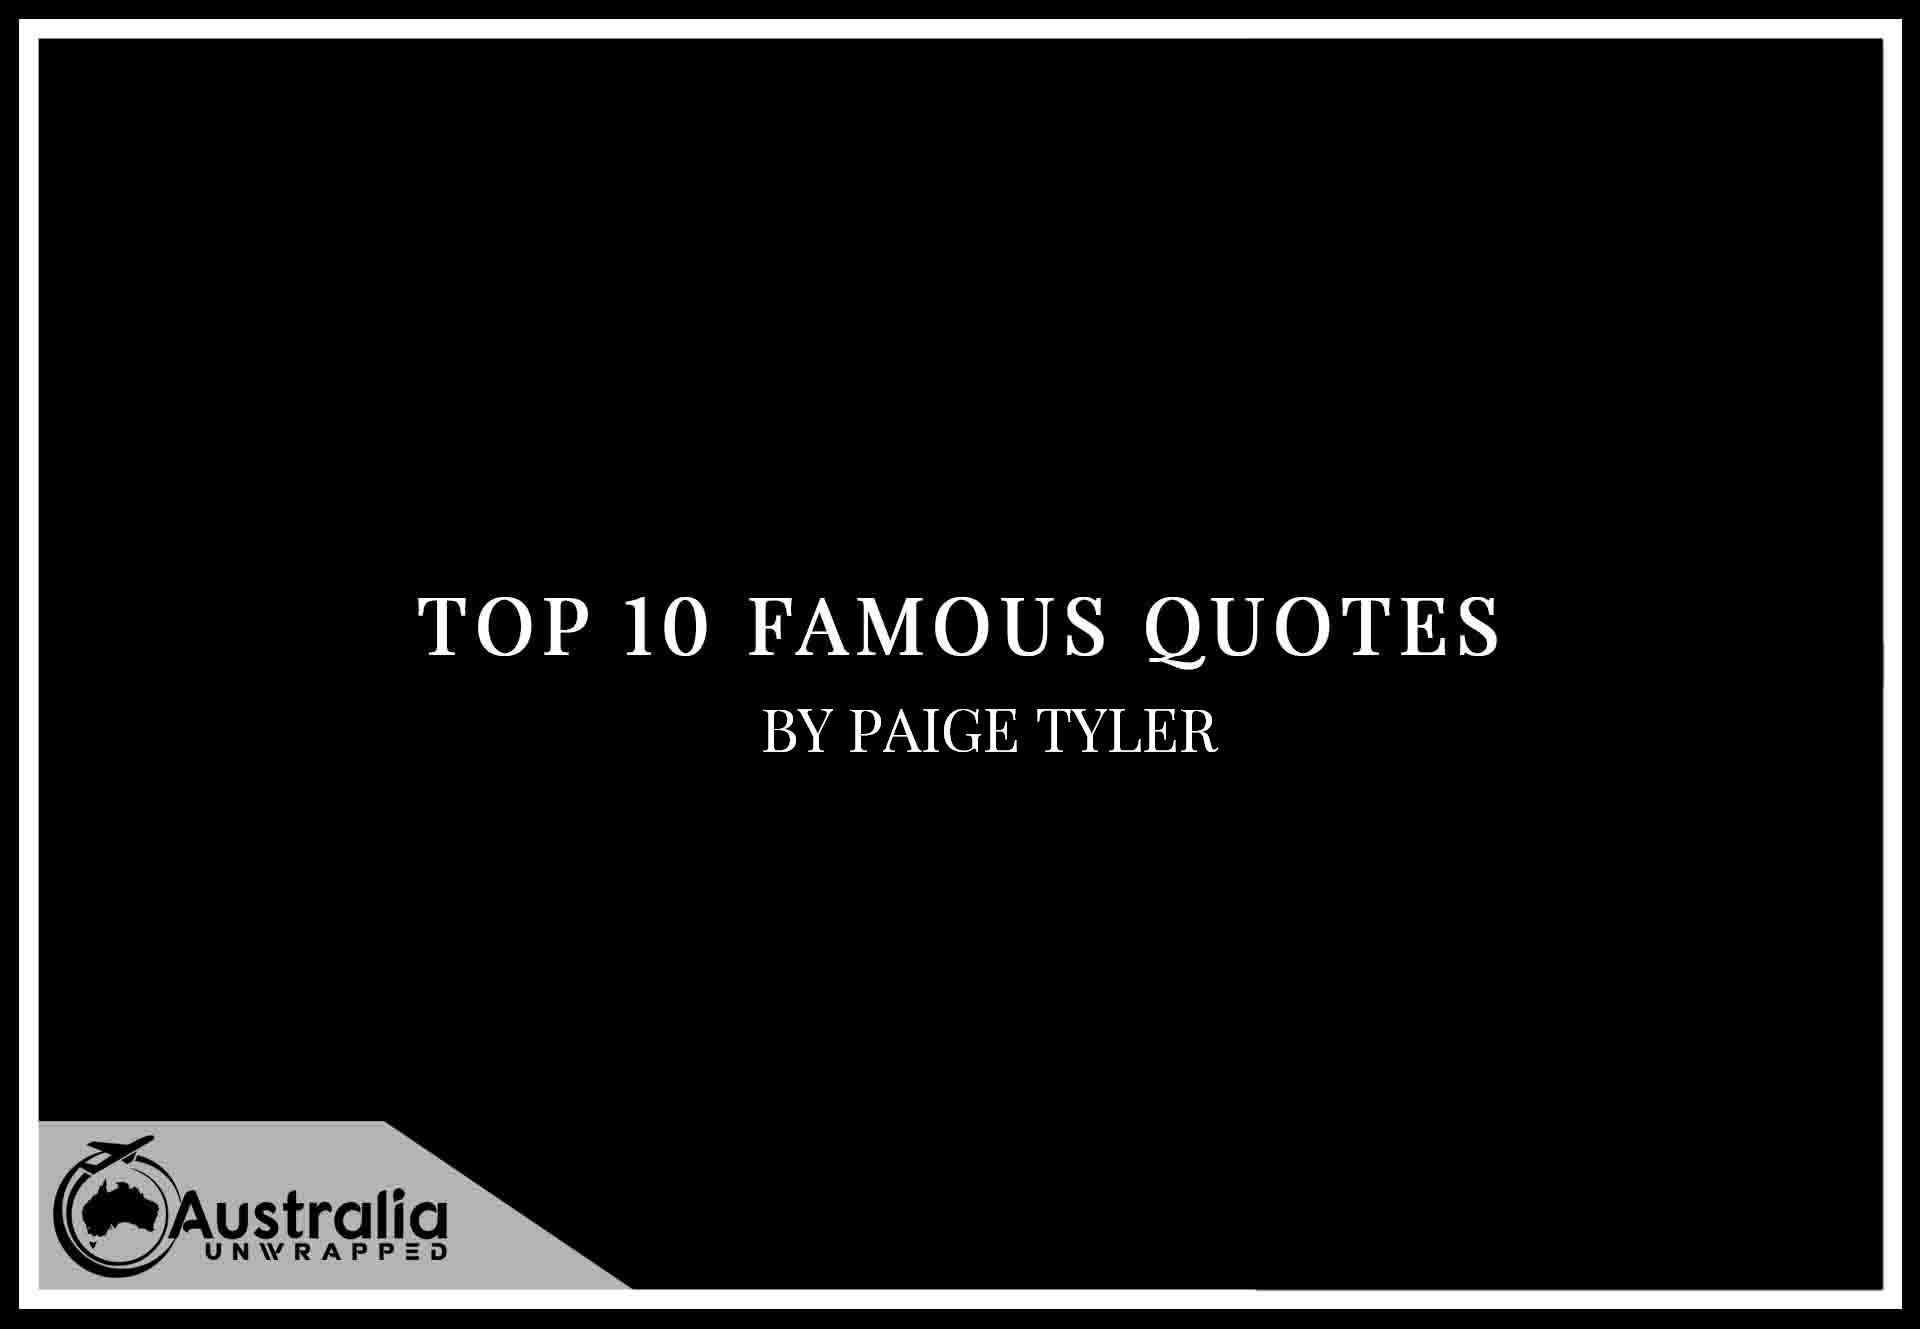 Top 10 Famous Quotes by Author Paige Tyler